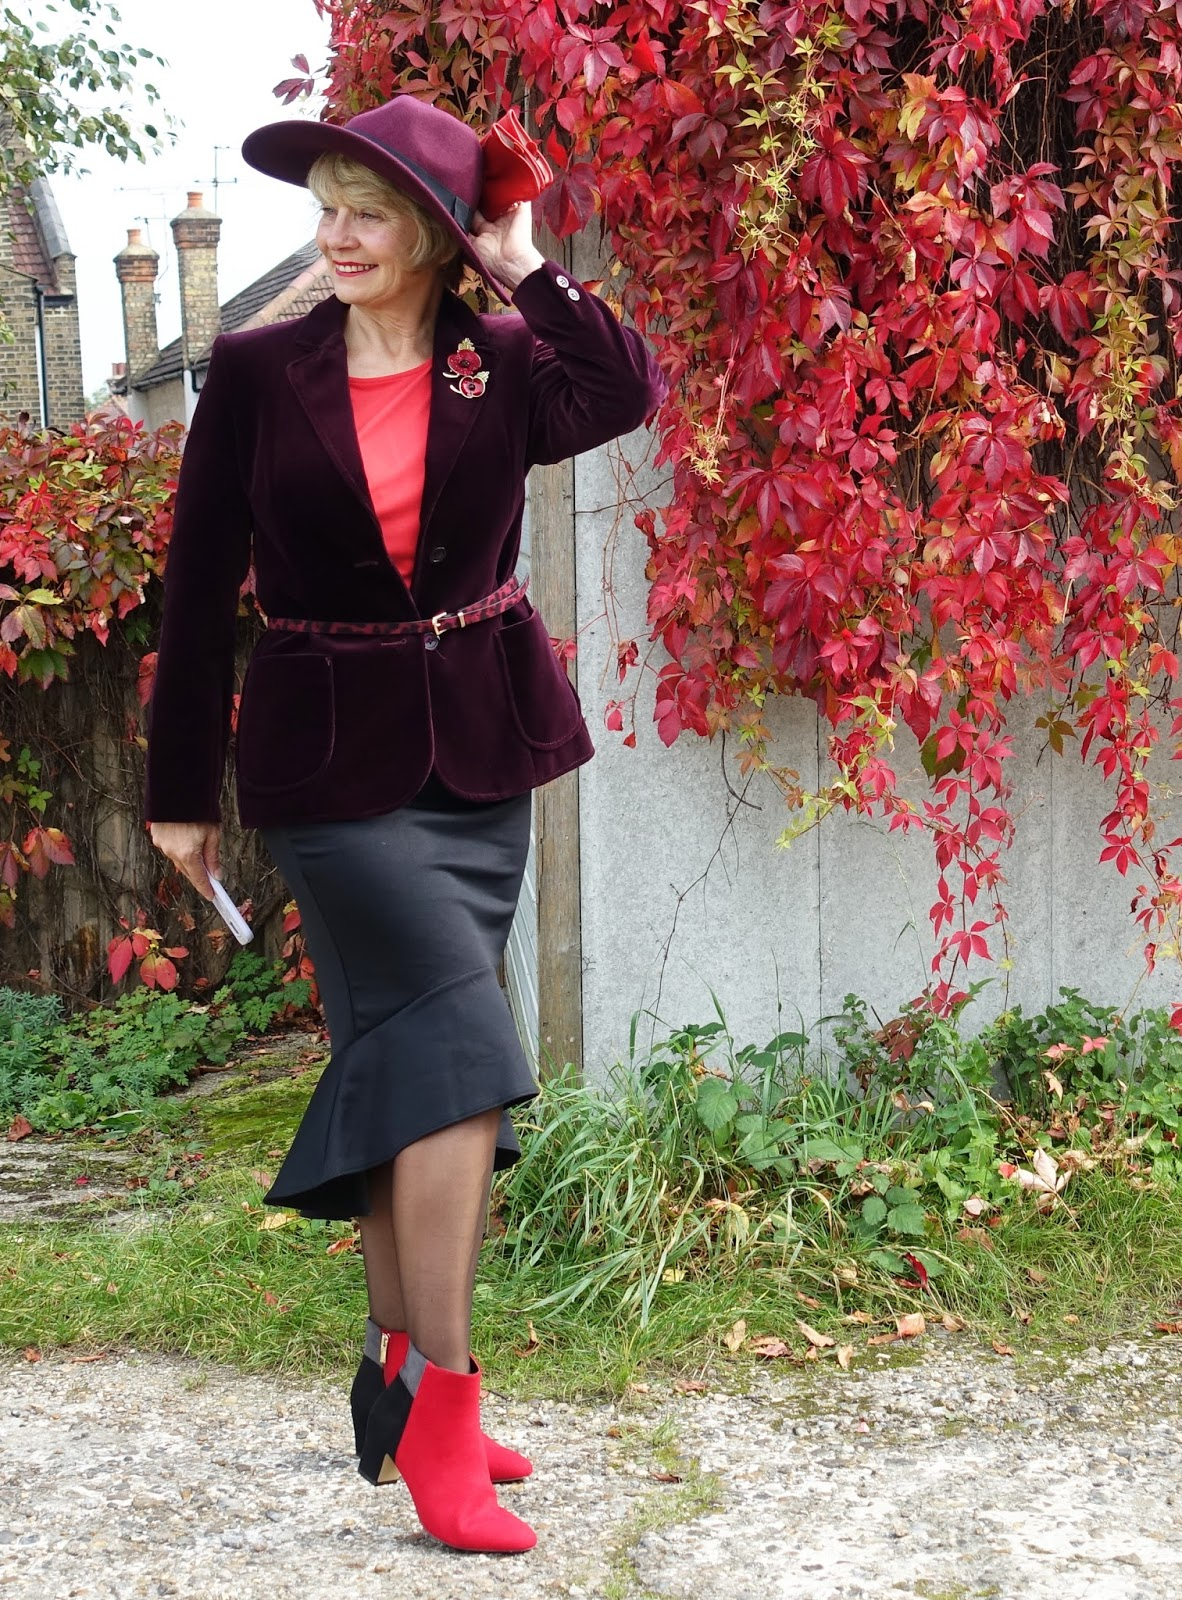 Gail Hanlon wears a burgundy fedora in the October 2017 hat challenge at Is This Mutton